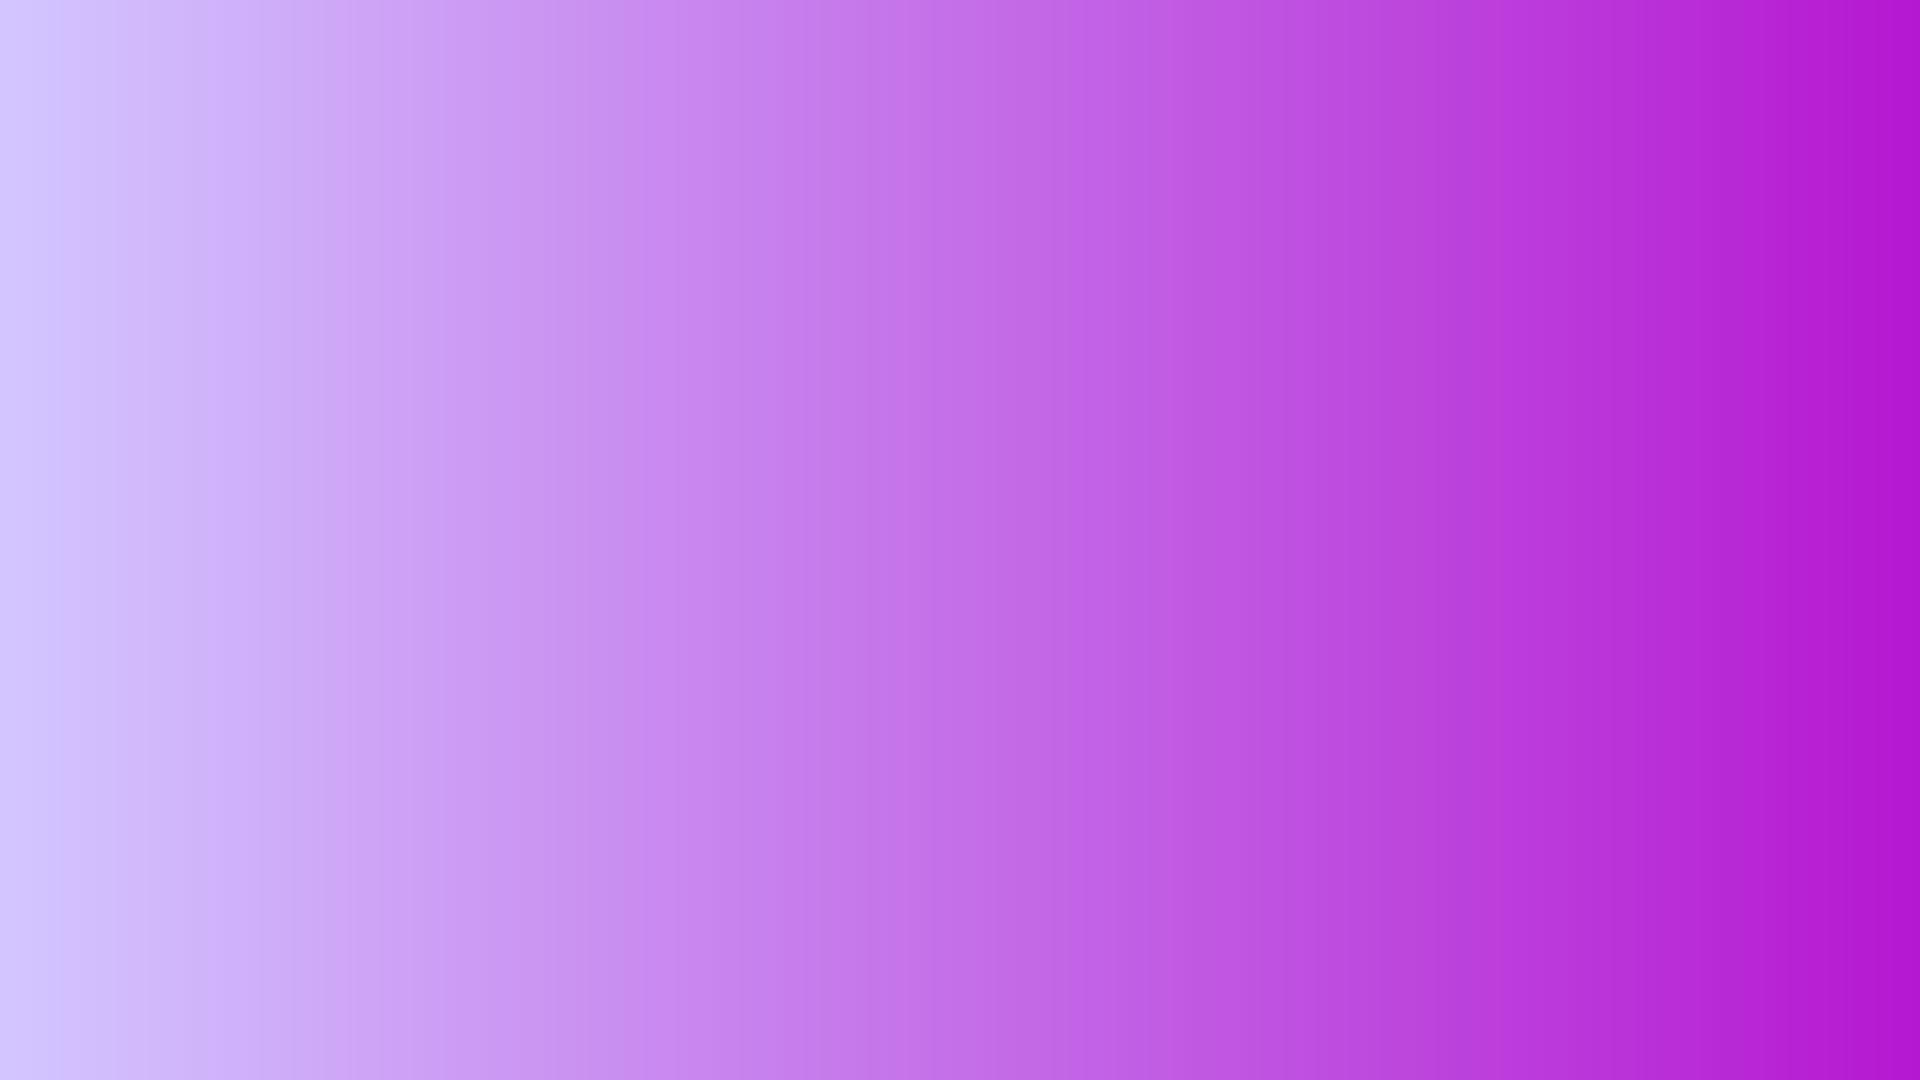 Light Day Purple Gradient Gradient